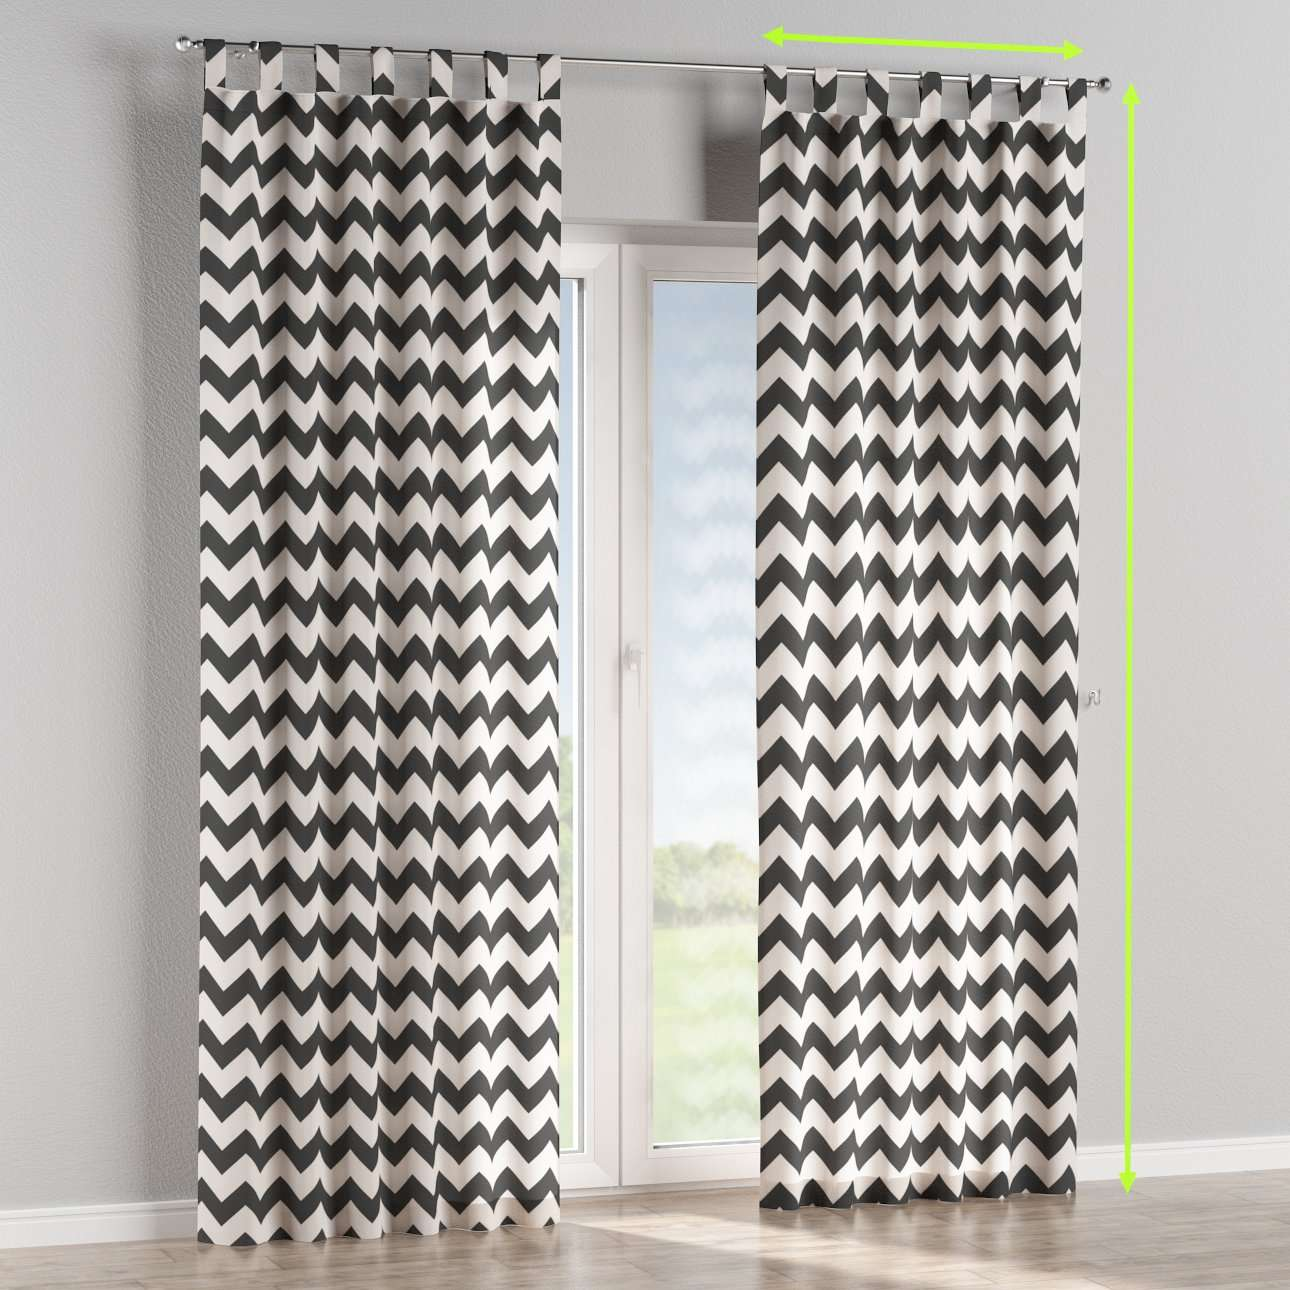 Tab top lined curtains in collection Comic Book & Geo Prints, fabric: 135-02